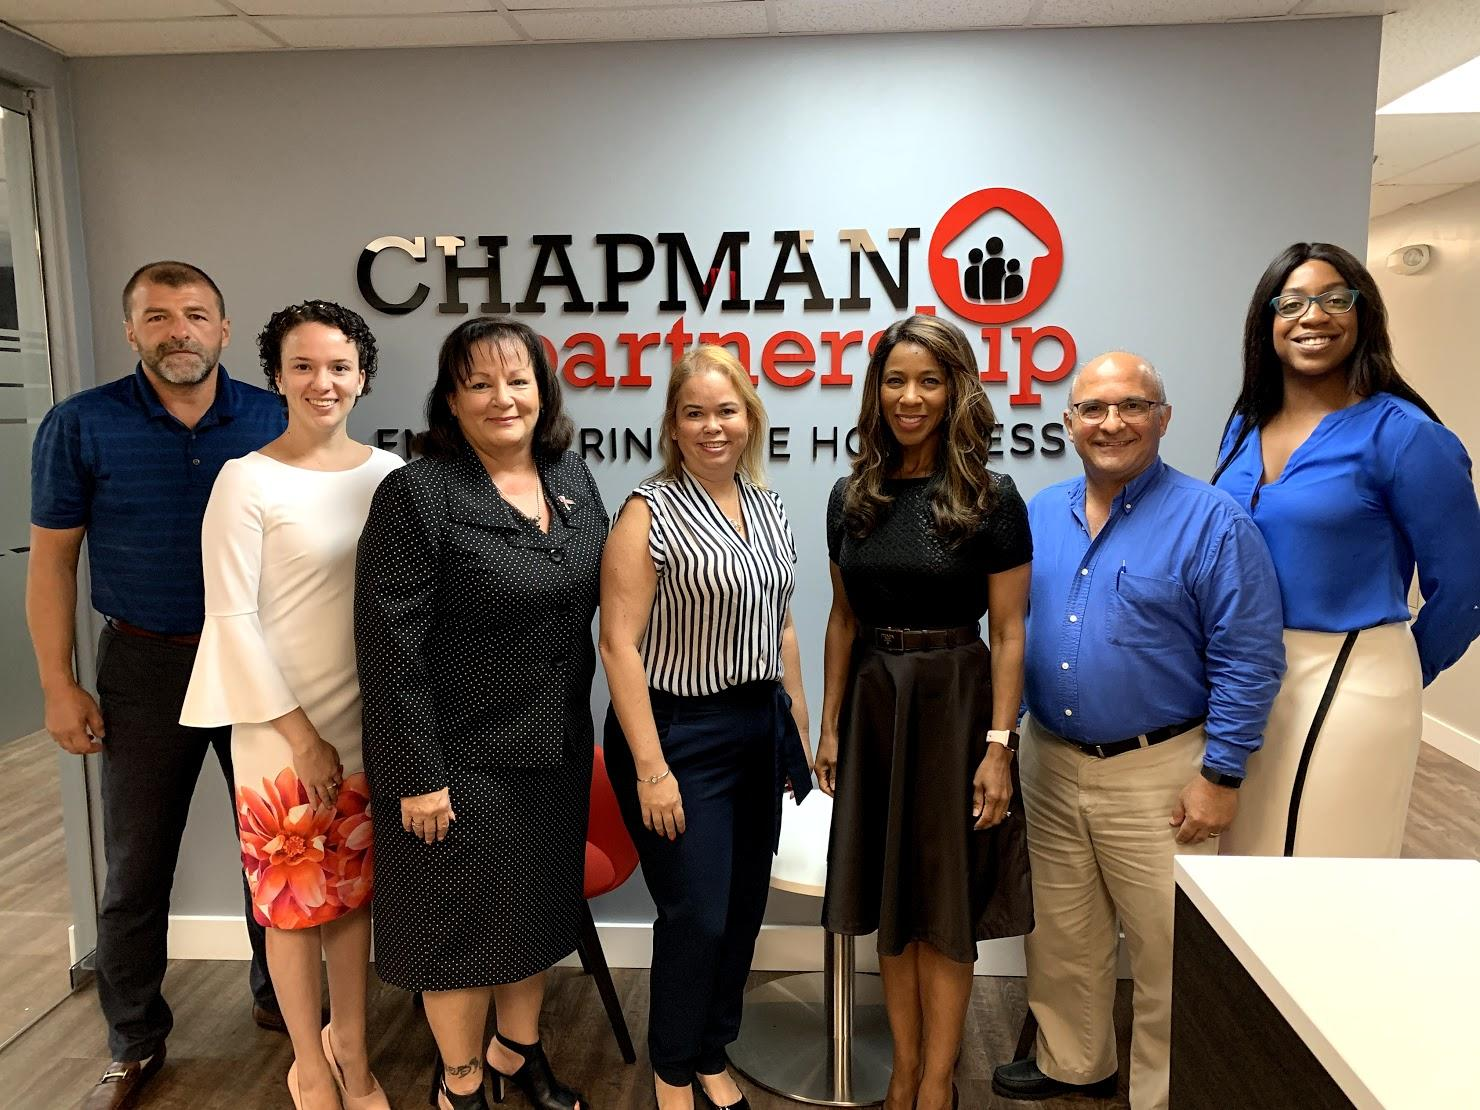 Visit to Chapman Partnership